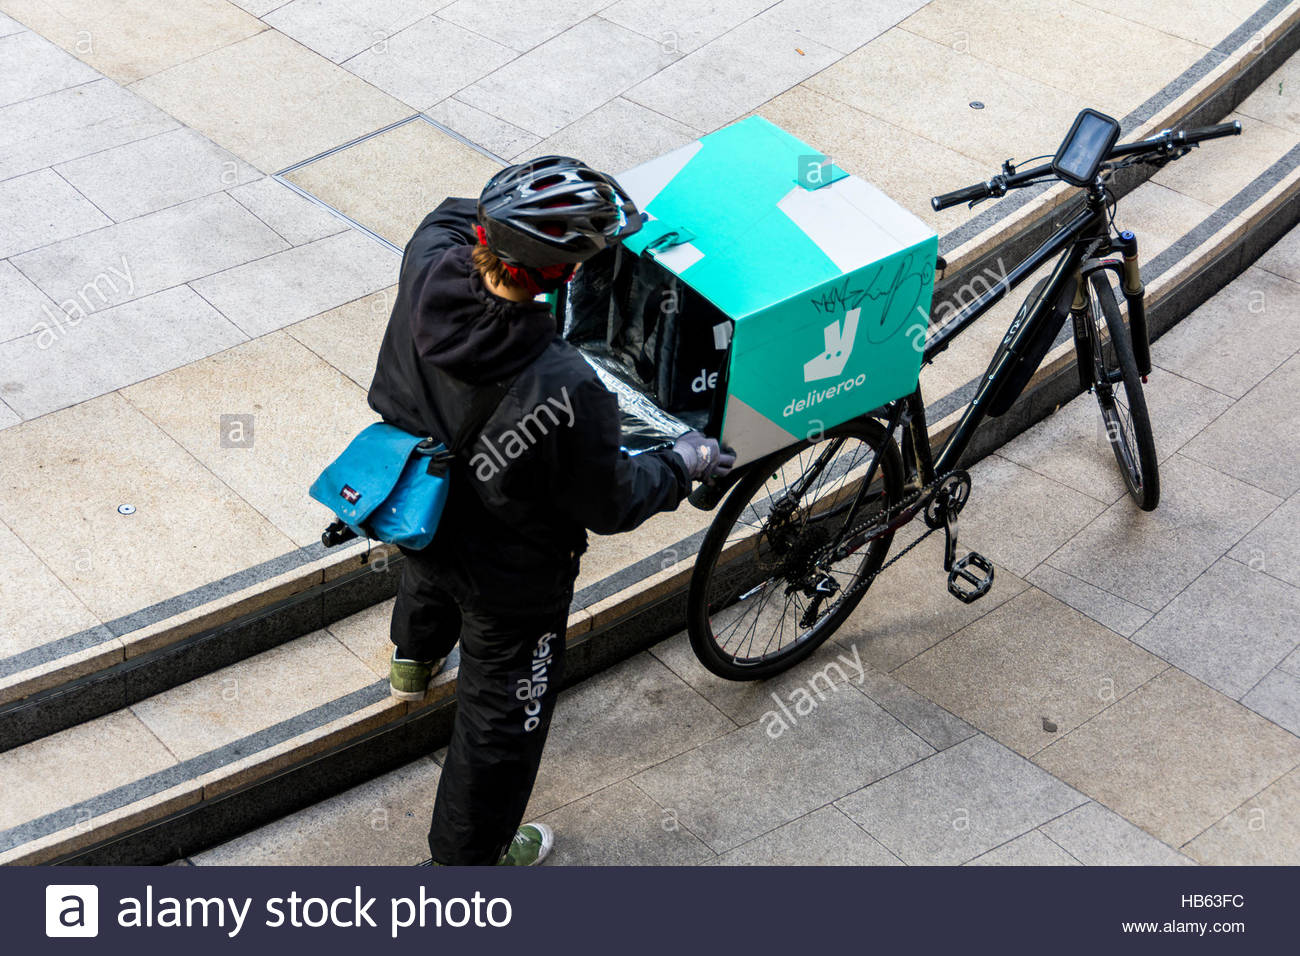 A Deliveroo delivery driver getting his delivery ready in London, UK - Stock Image